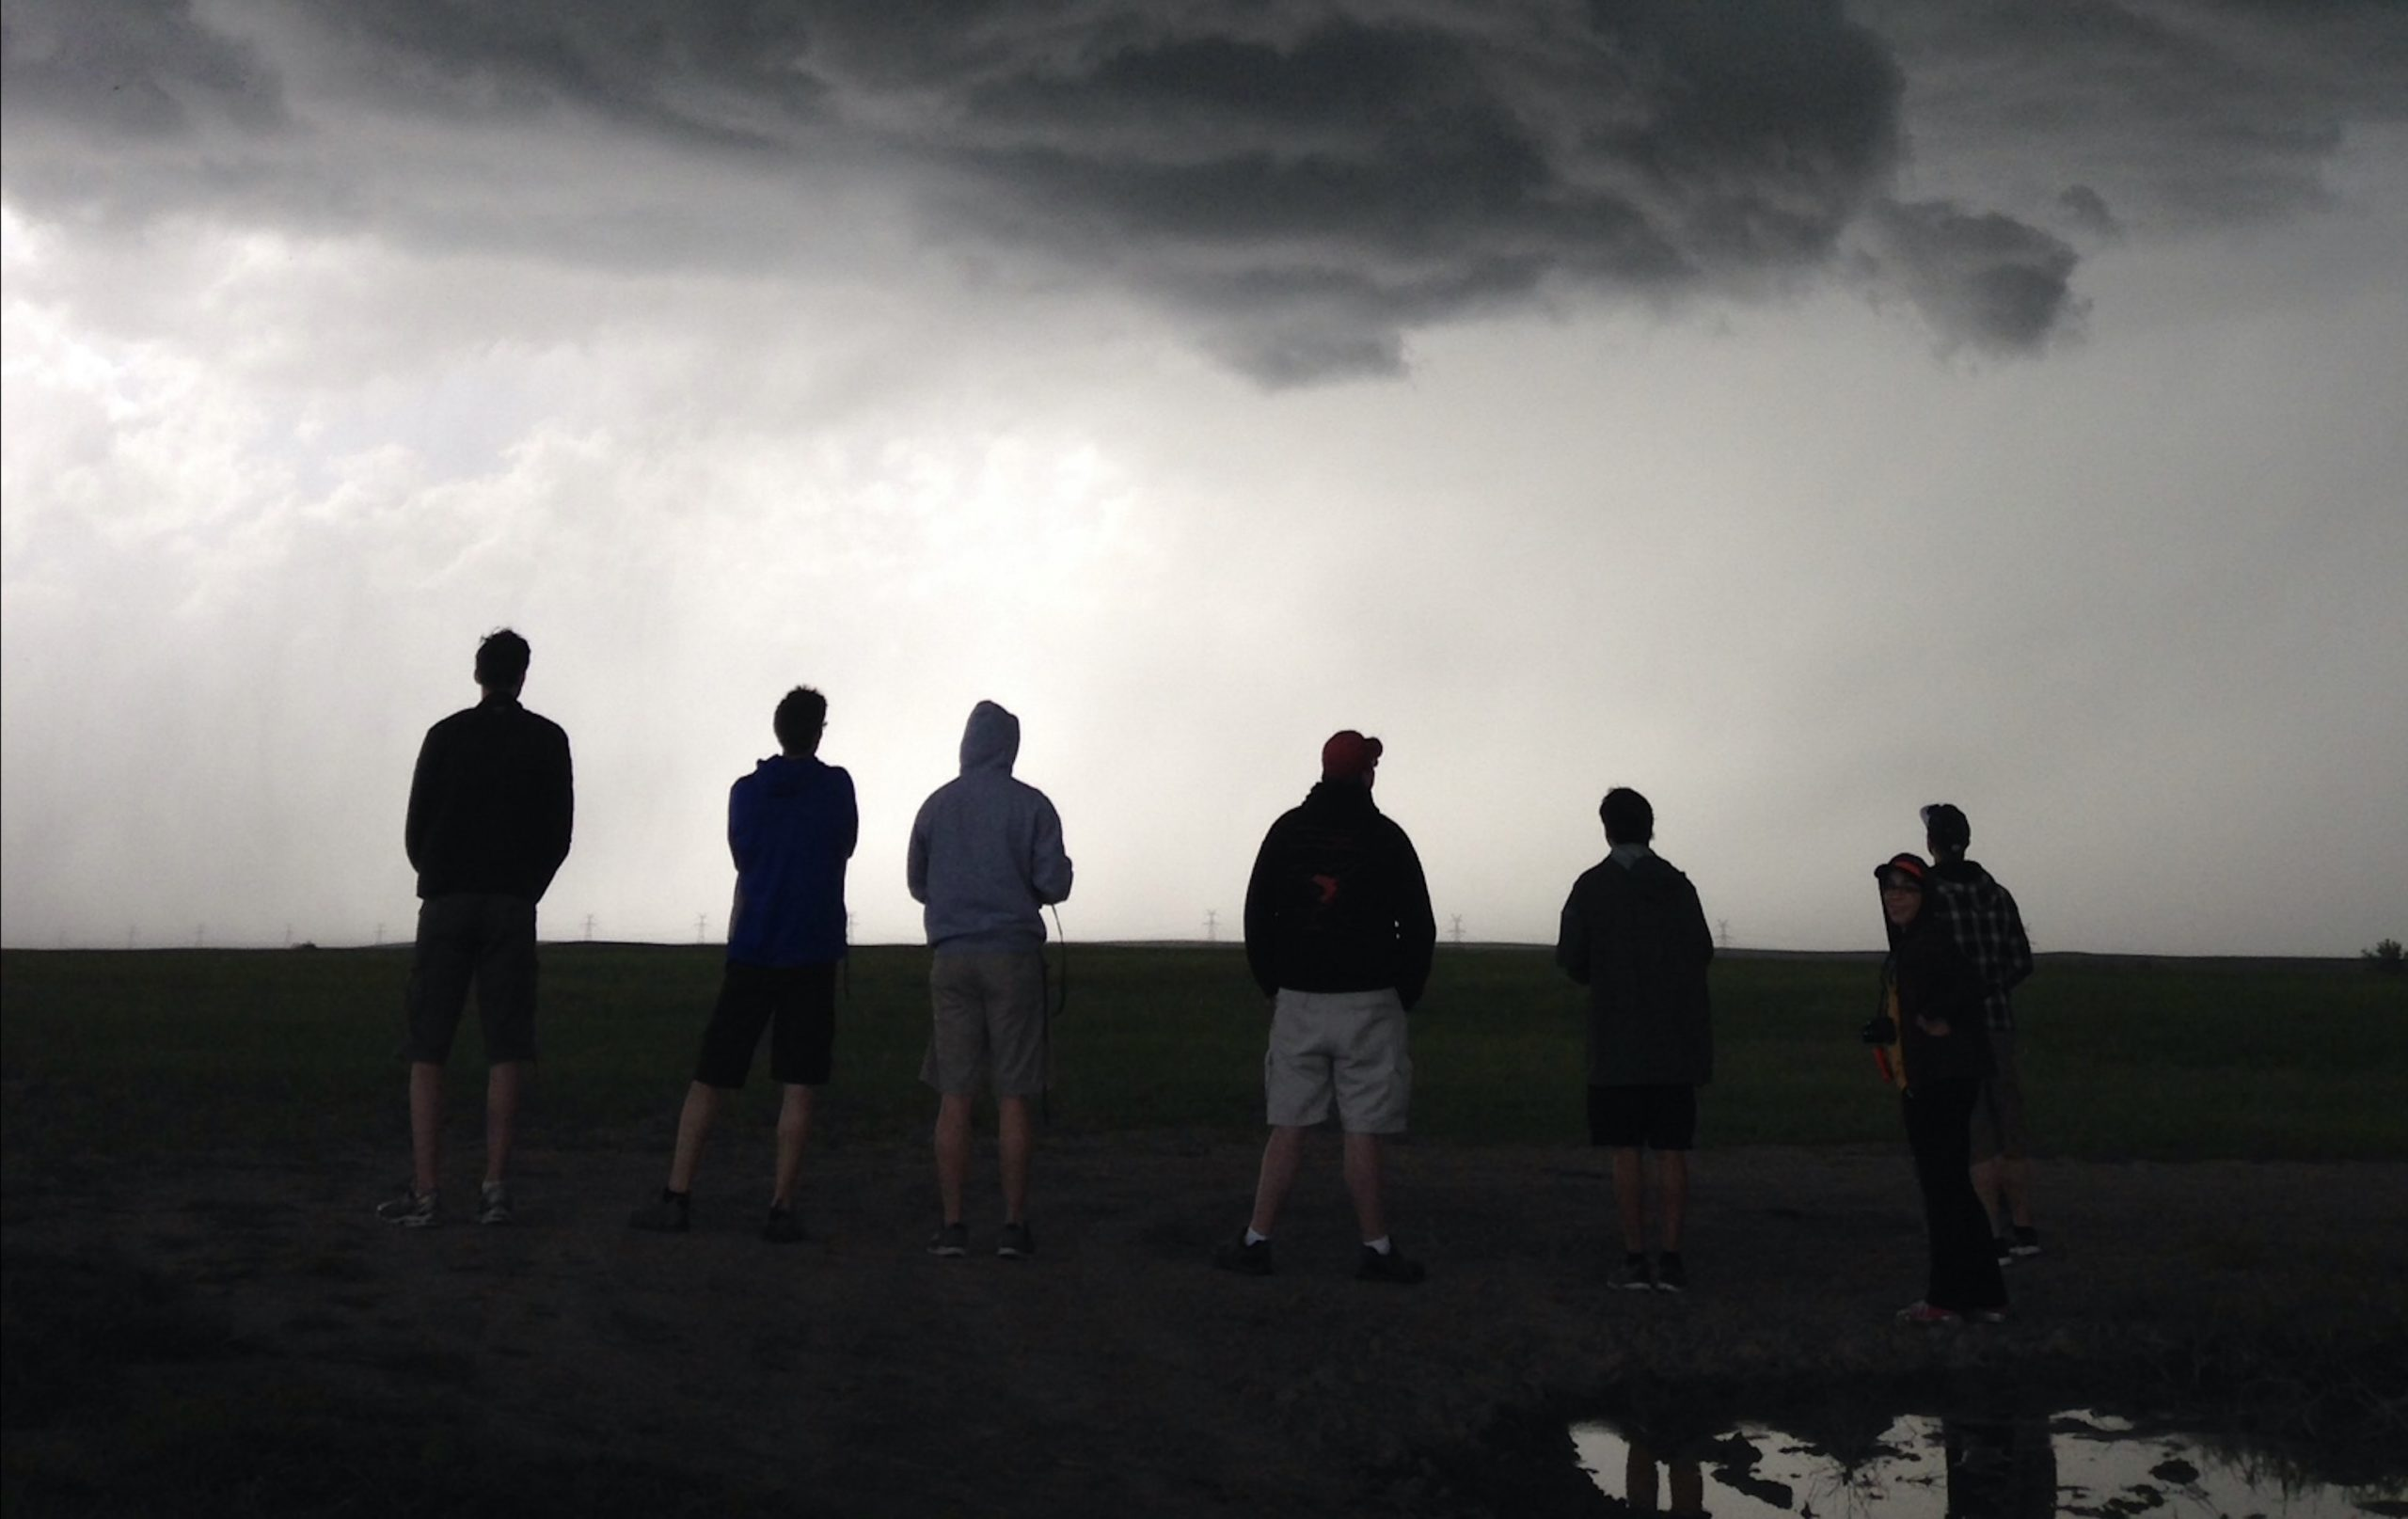 Students watching the storm